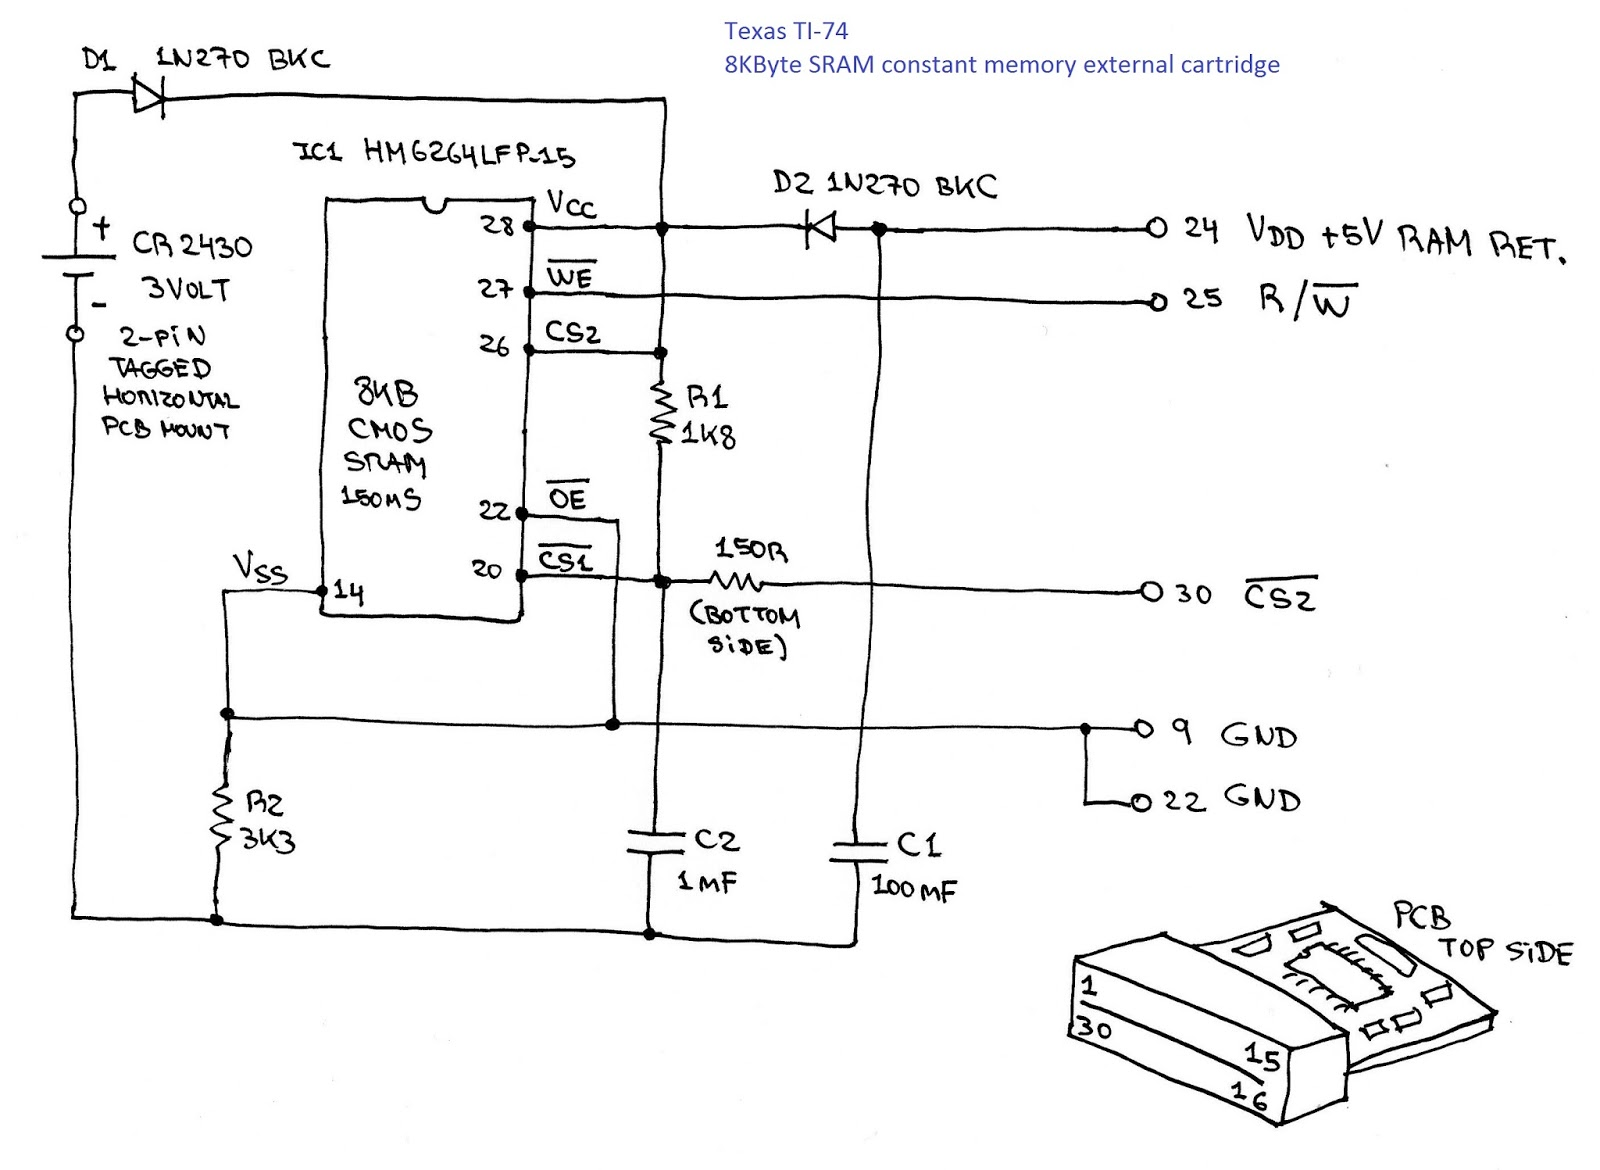 [Image: cartridge_8KB_SRAM_diagram.jpg]